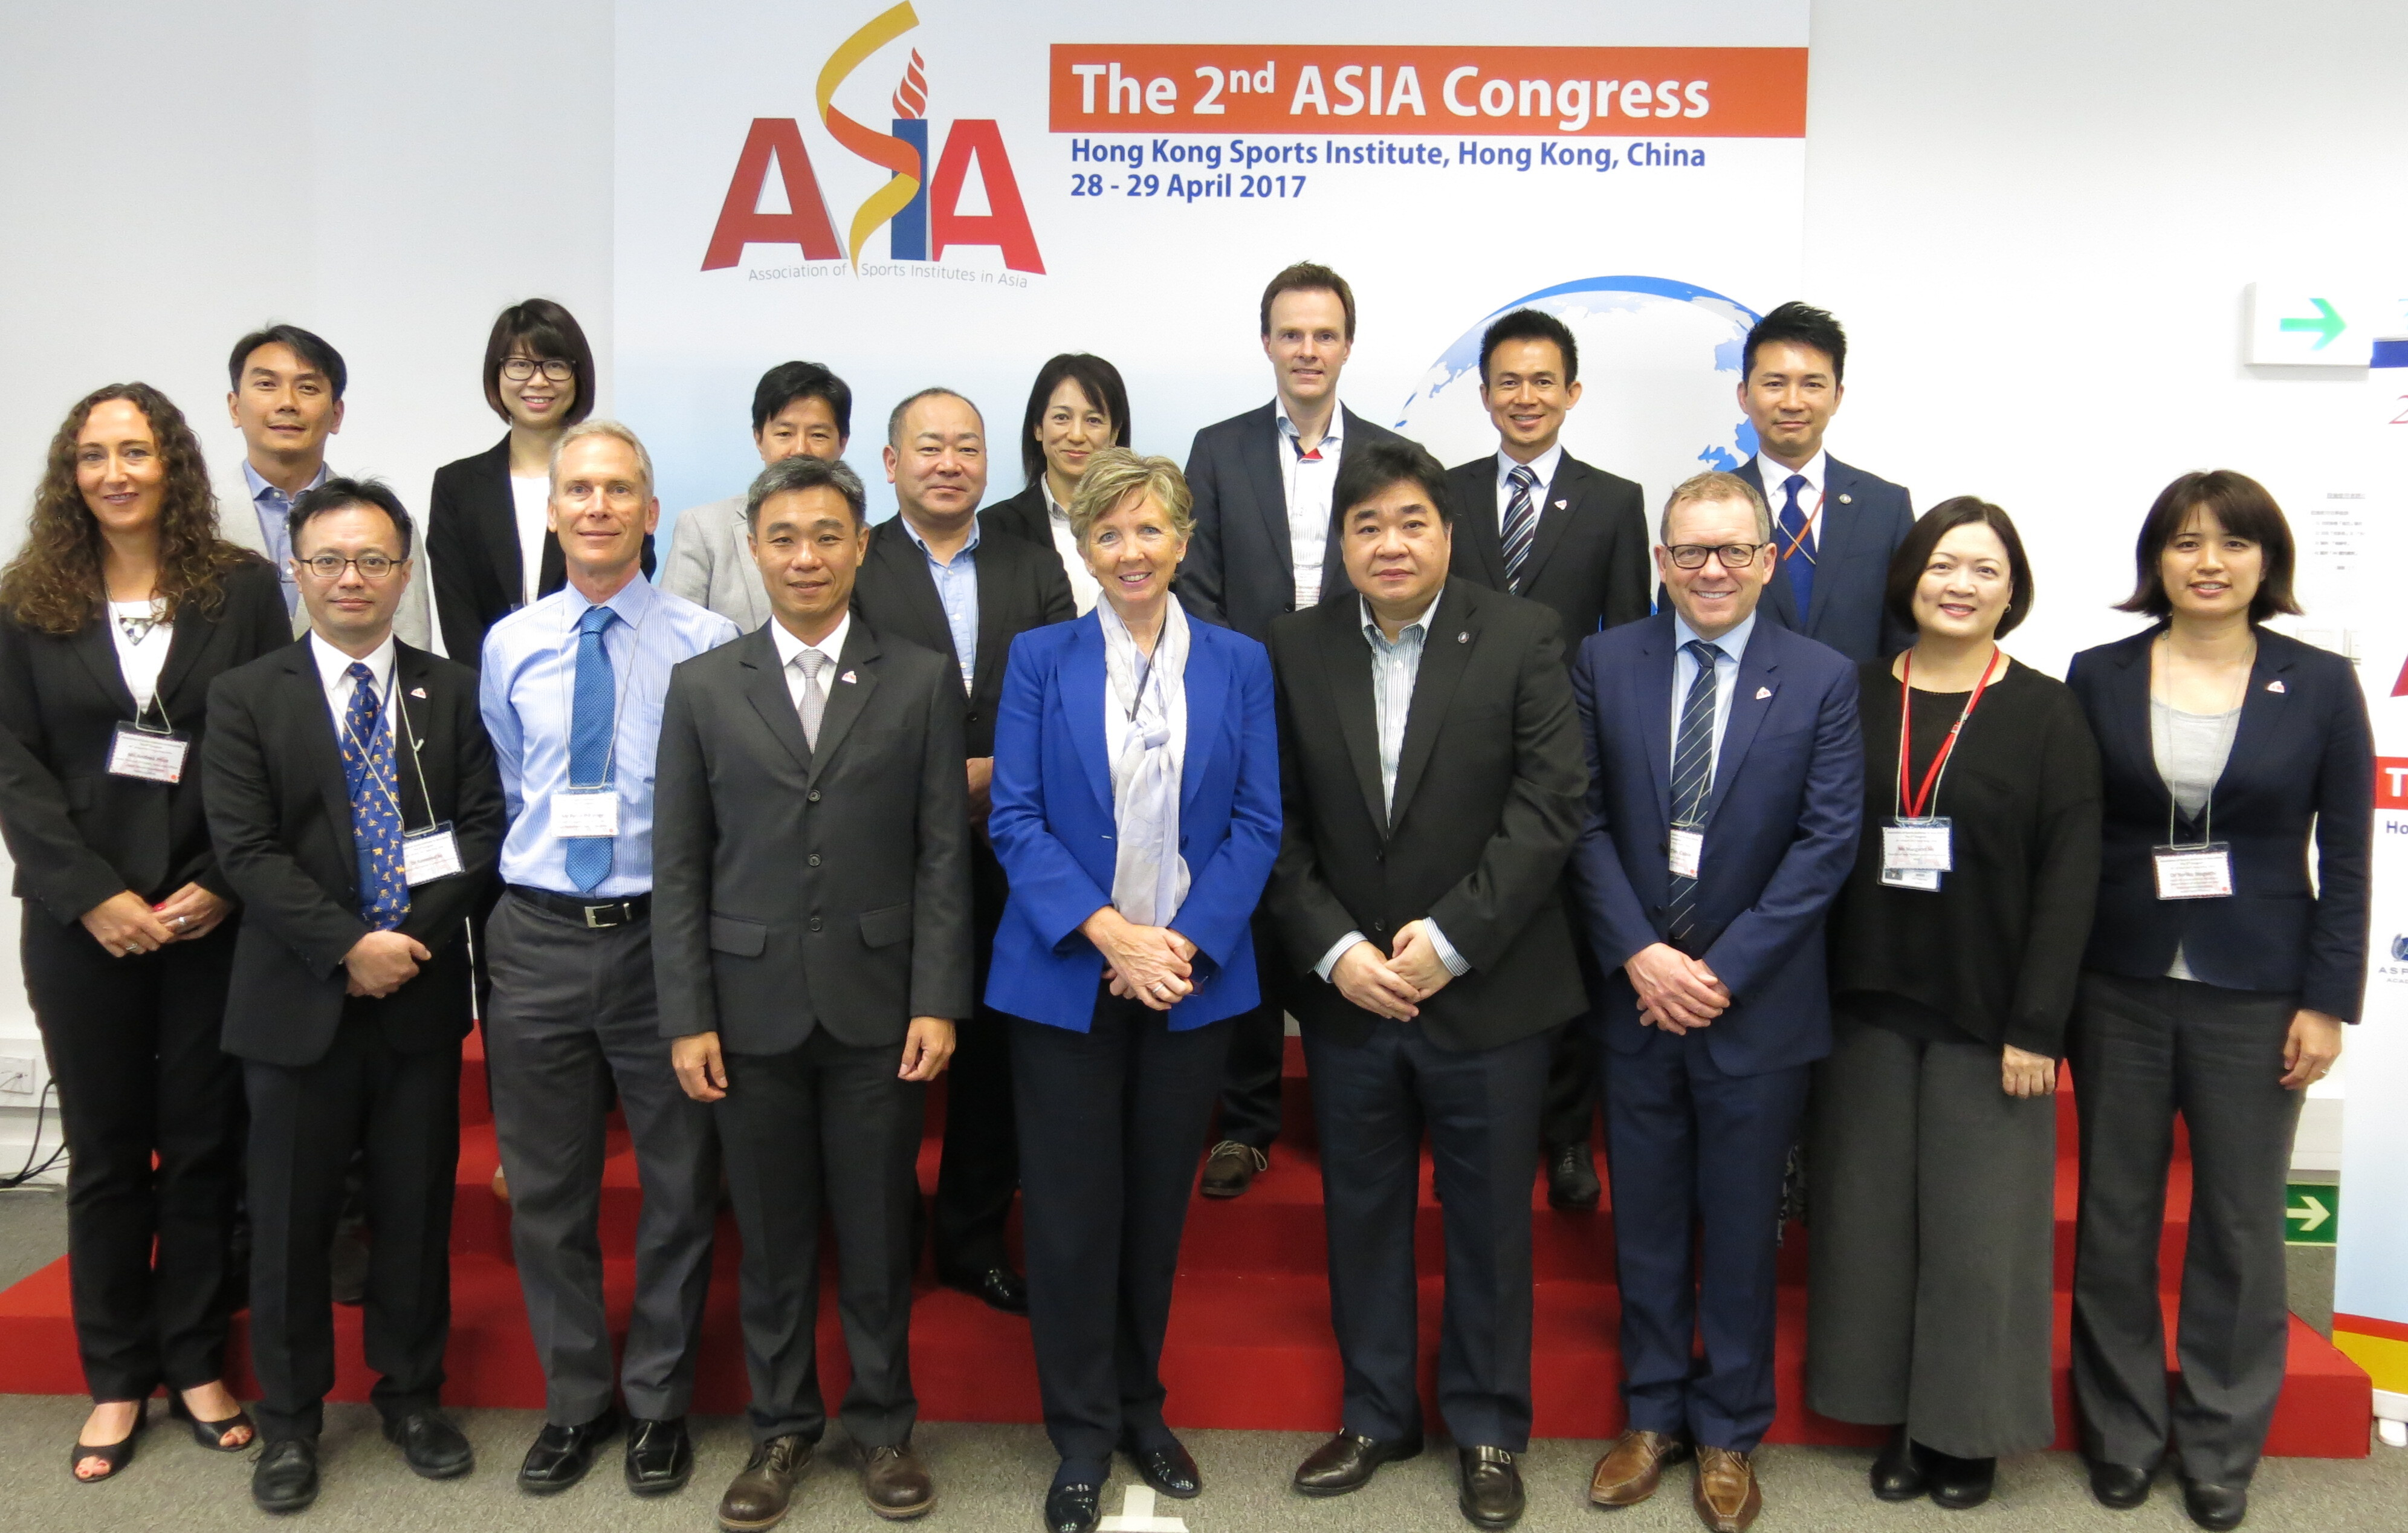 The 2nd ASIA Congress